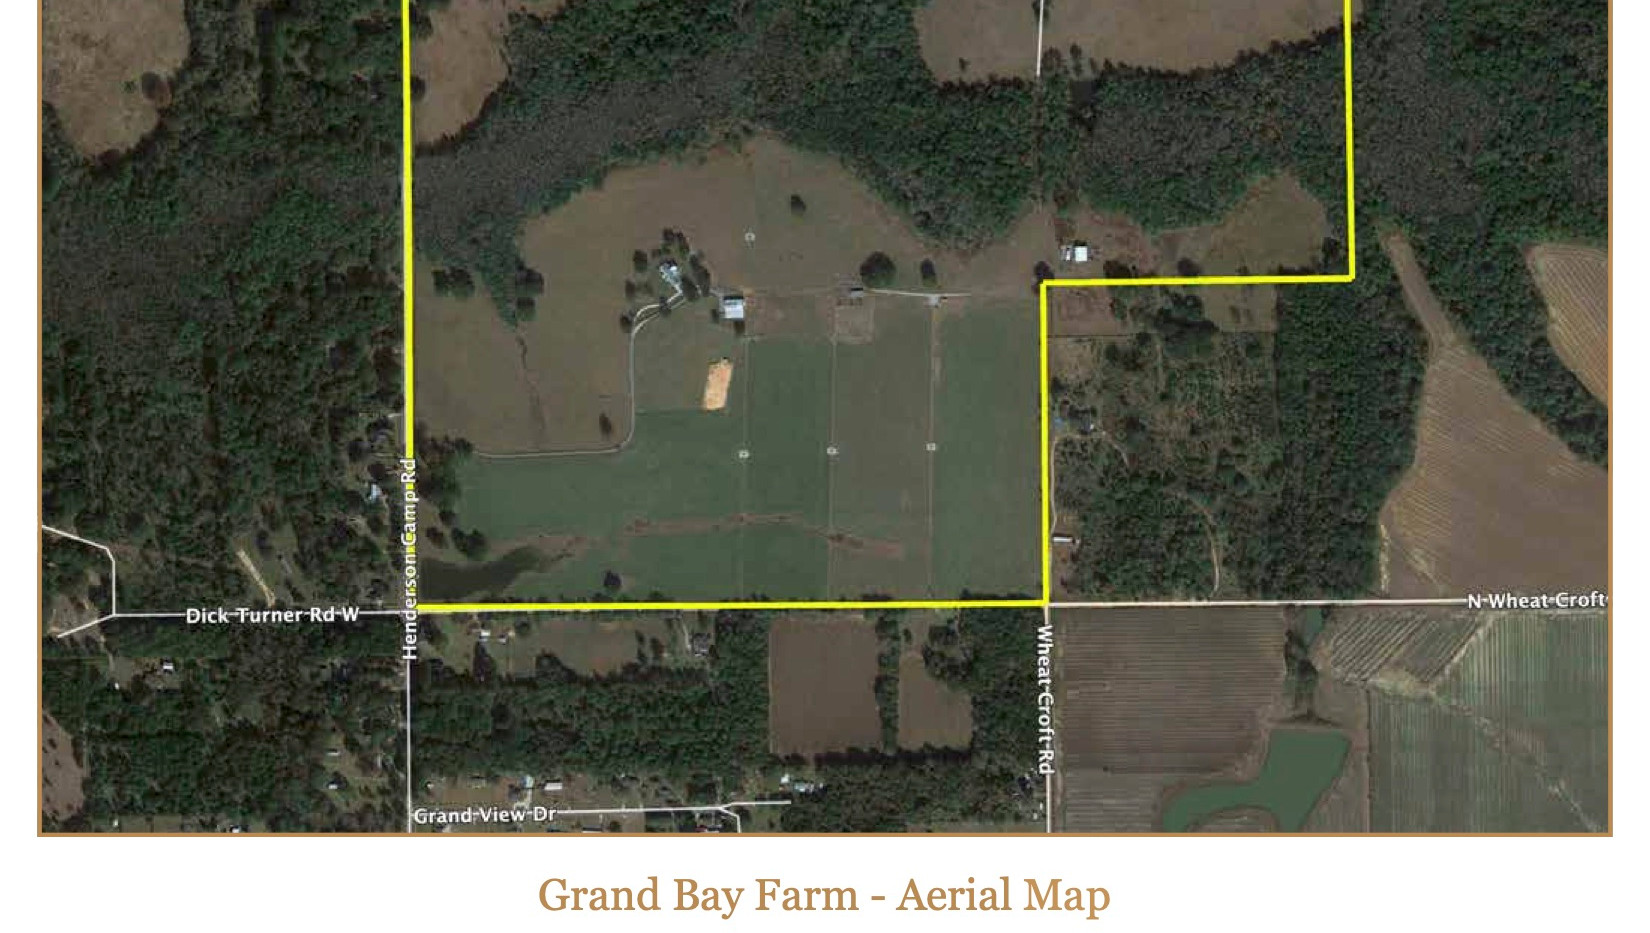 Grand Bay Farm - Aerial Map